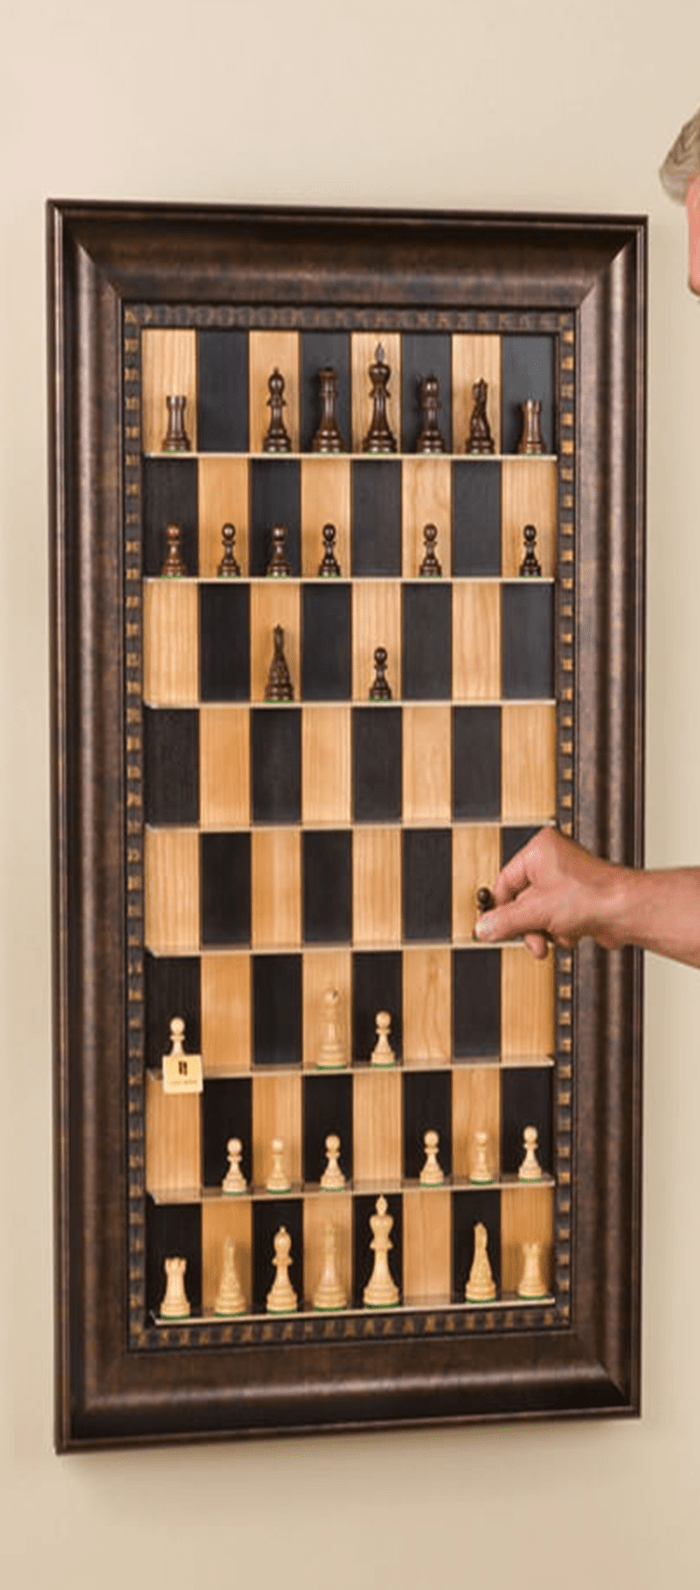 Vertical Chess Board To Hang On Your Study Wall The Diy Life